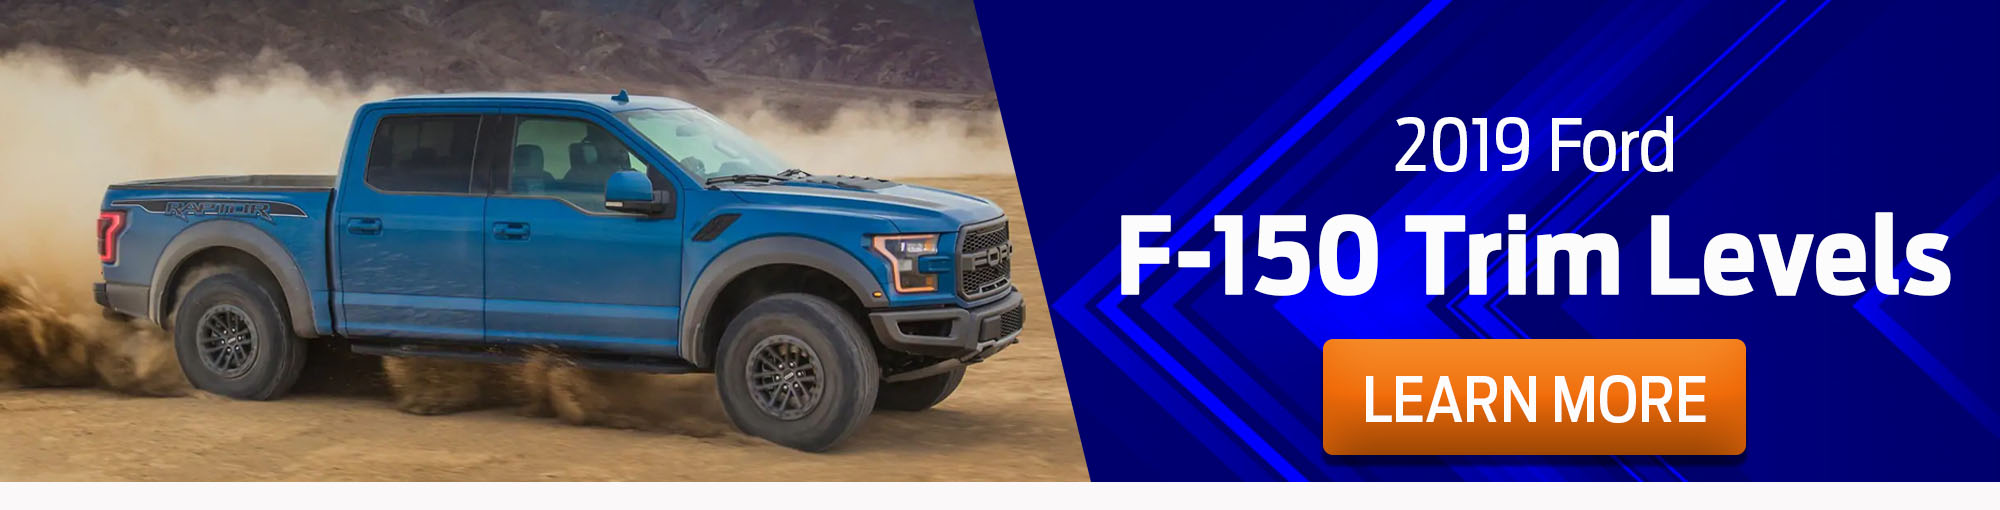 2019 Ford F-150 Trim Levels